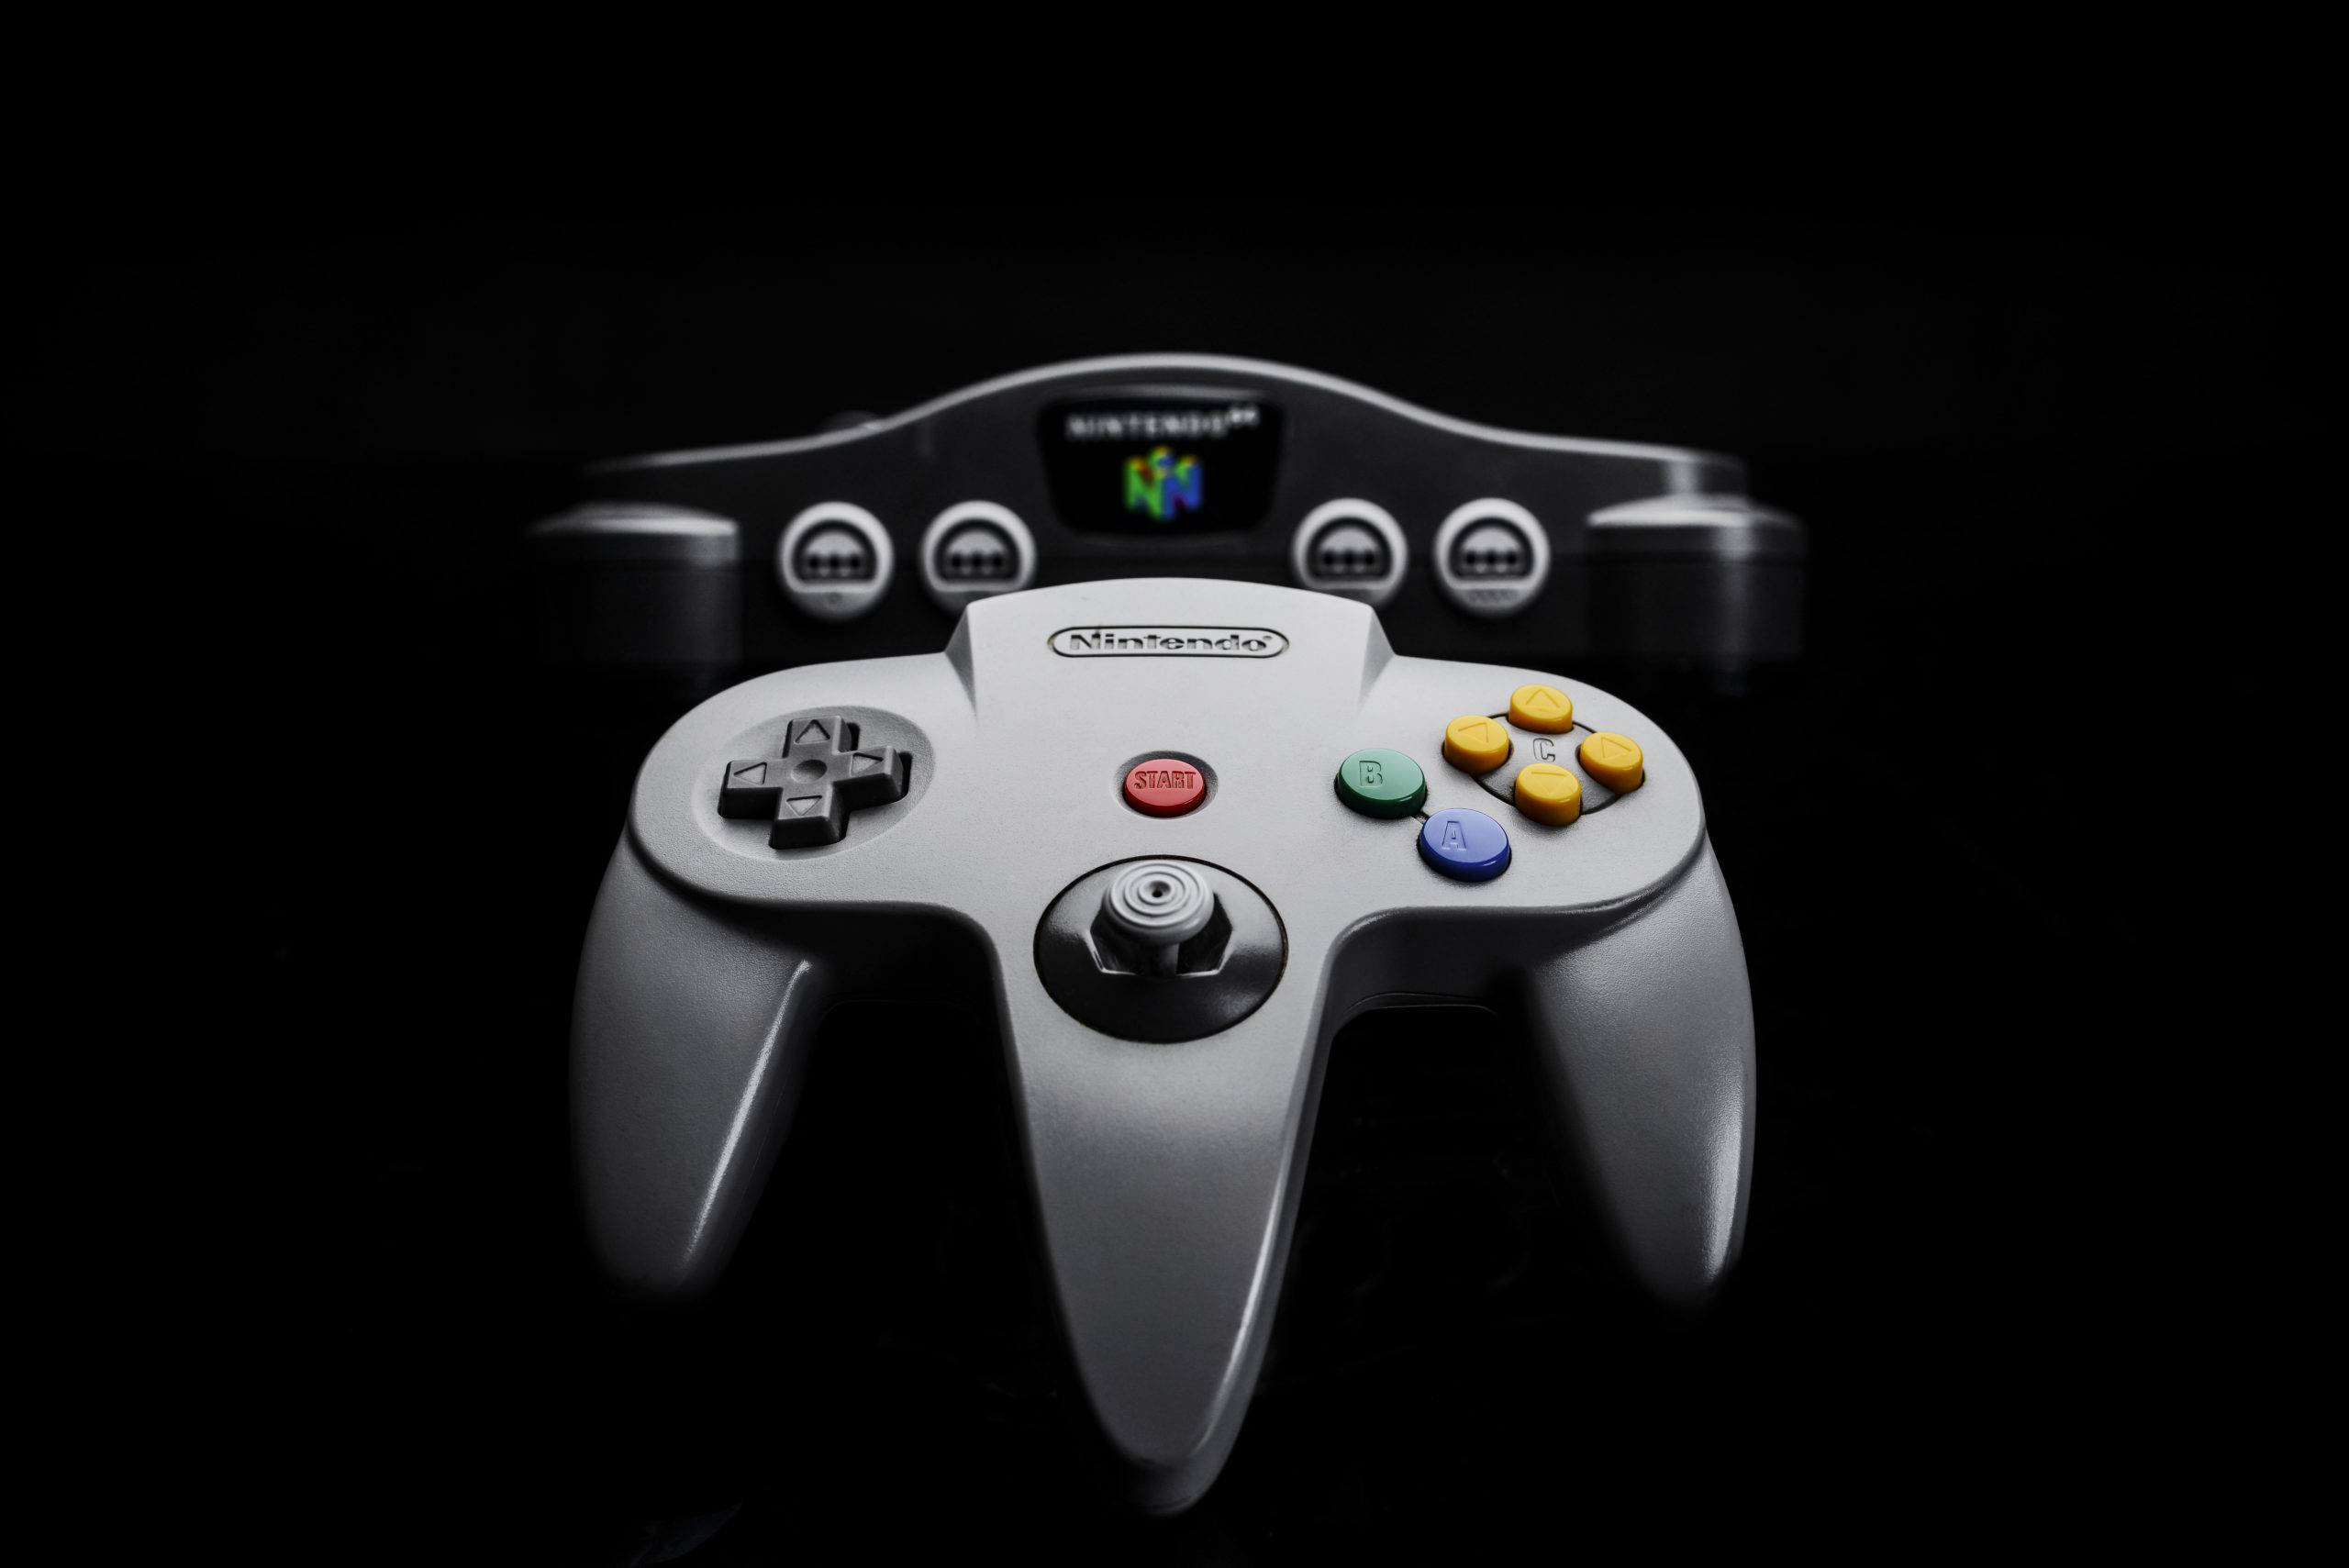 Most Popular Toys of the 90s: Nintendo 64